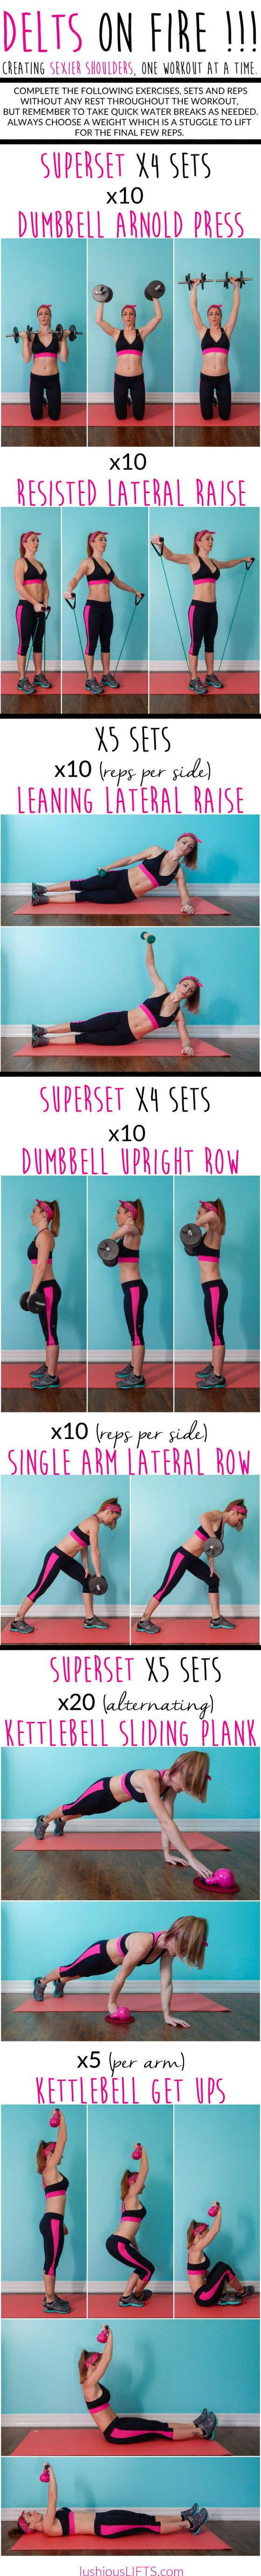 Killer shoulder #workout. Do it in the gym or at home!